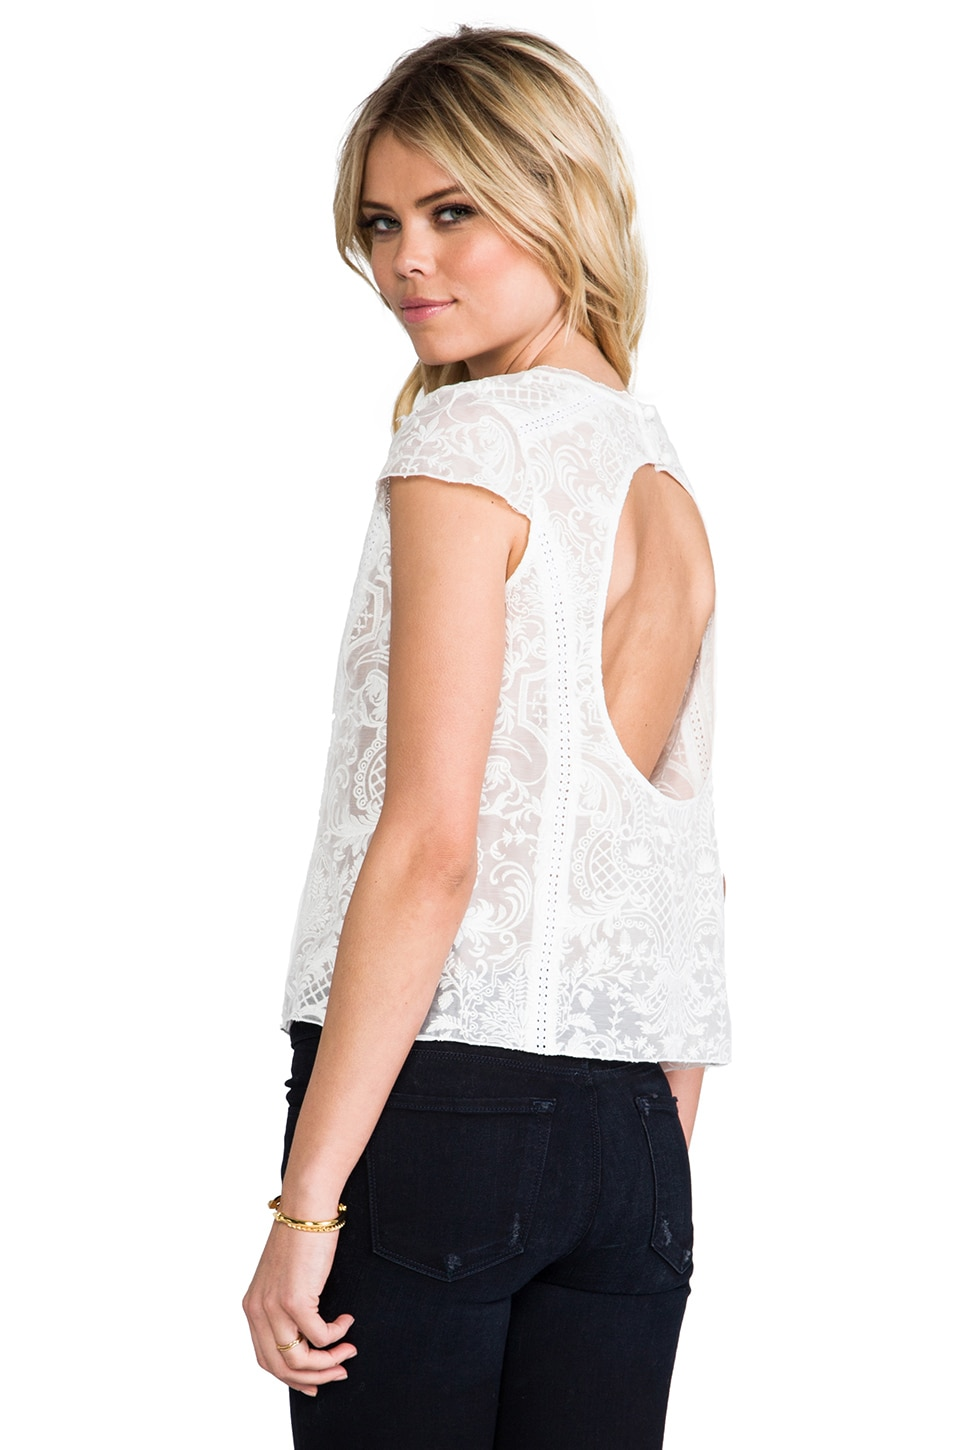 Dolce Vita Titan Top in White